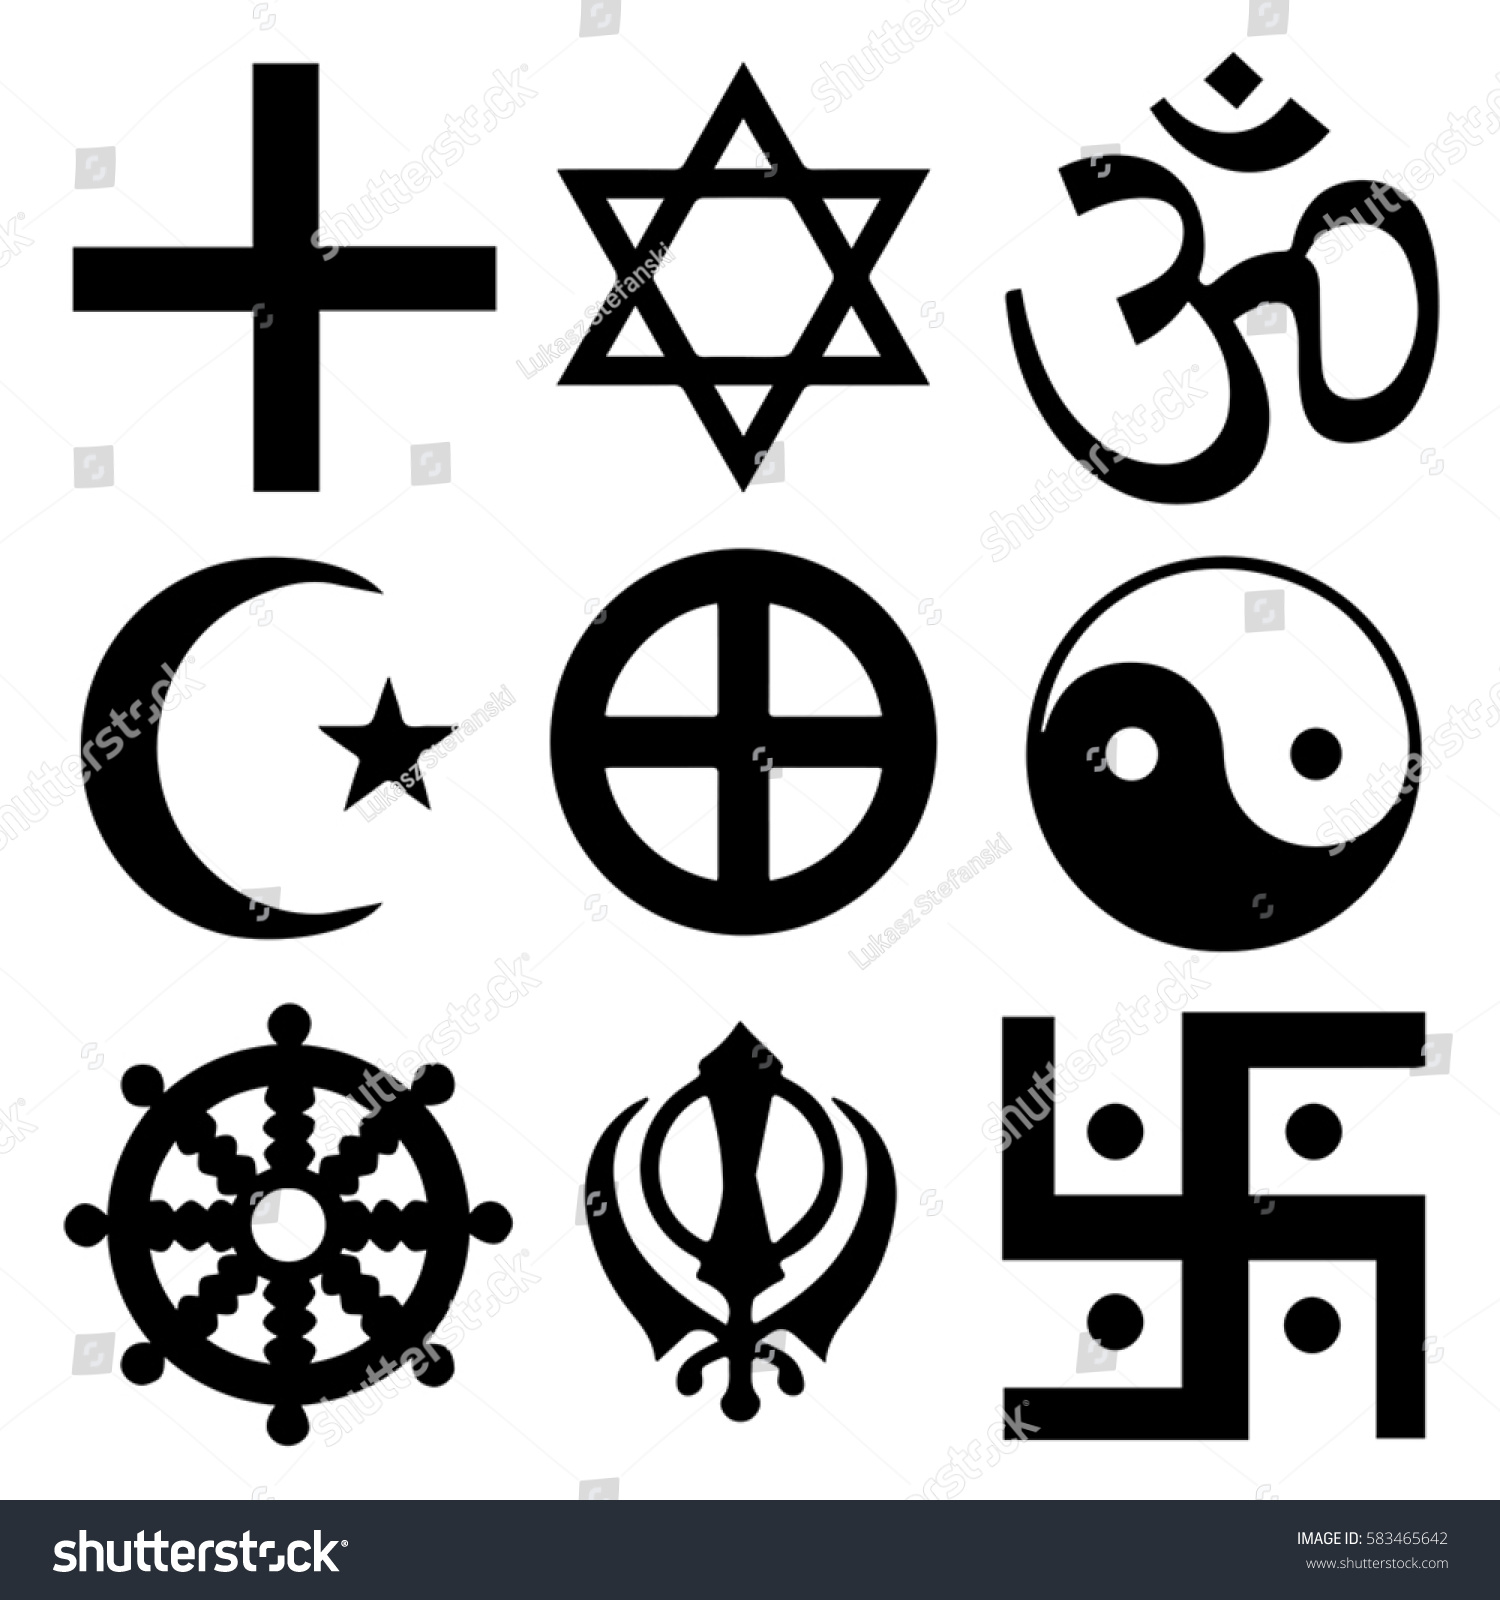 Royalty Free Religious Symbols From The Top 583465642 Stock Photo